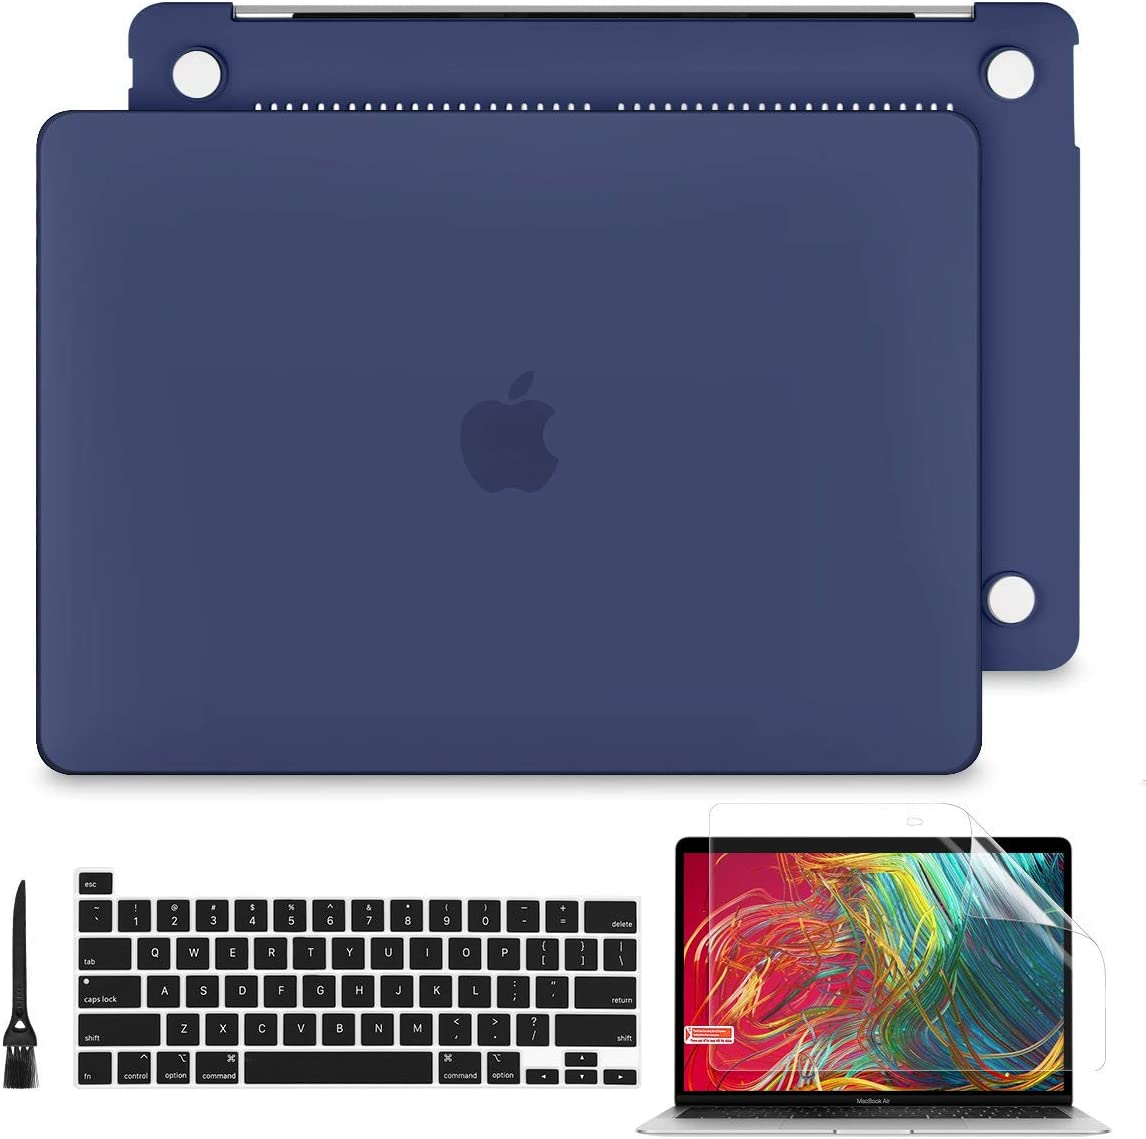 Batianda for New MacBook Pro 13 inch Case 2020 Release Model A2289 A2251 Model Plastic Hard Shell with Keyboard Cover Skin & Screen Protector for Mac Pro 13 Touch Bar, Navy Blue